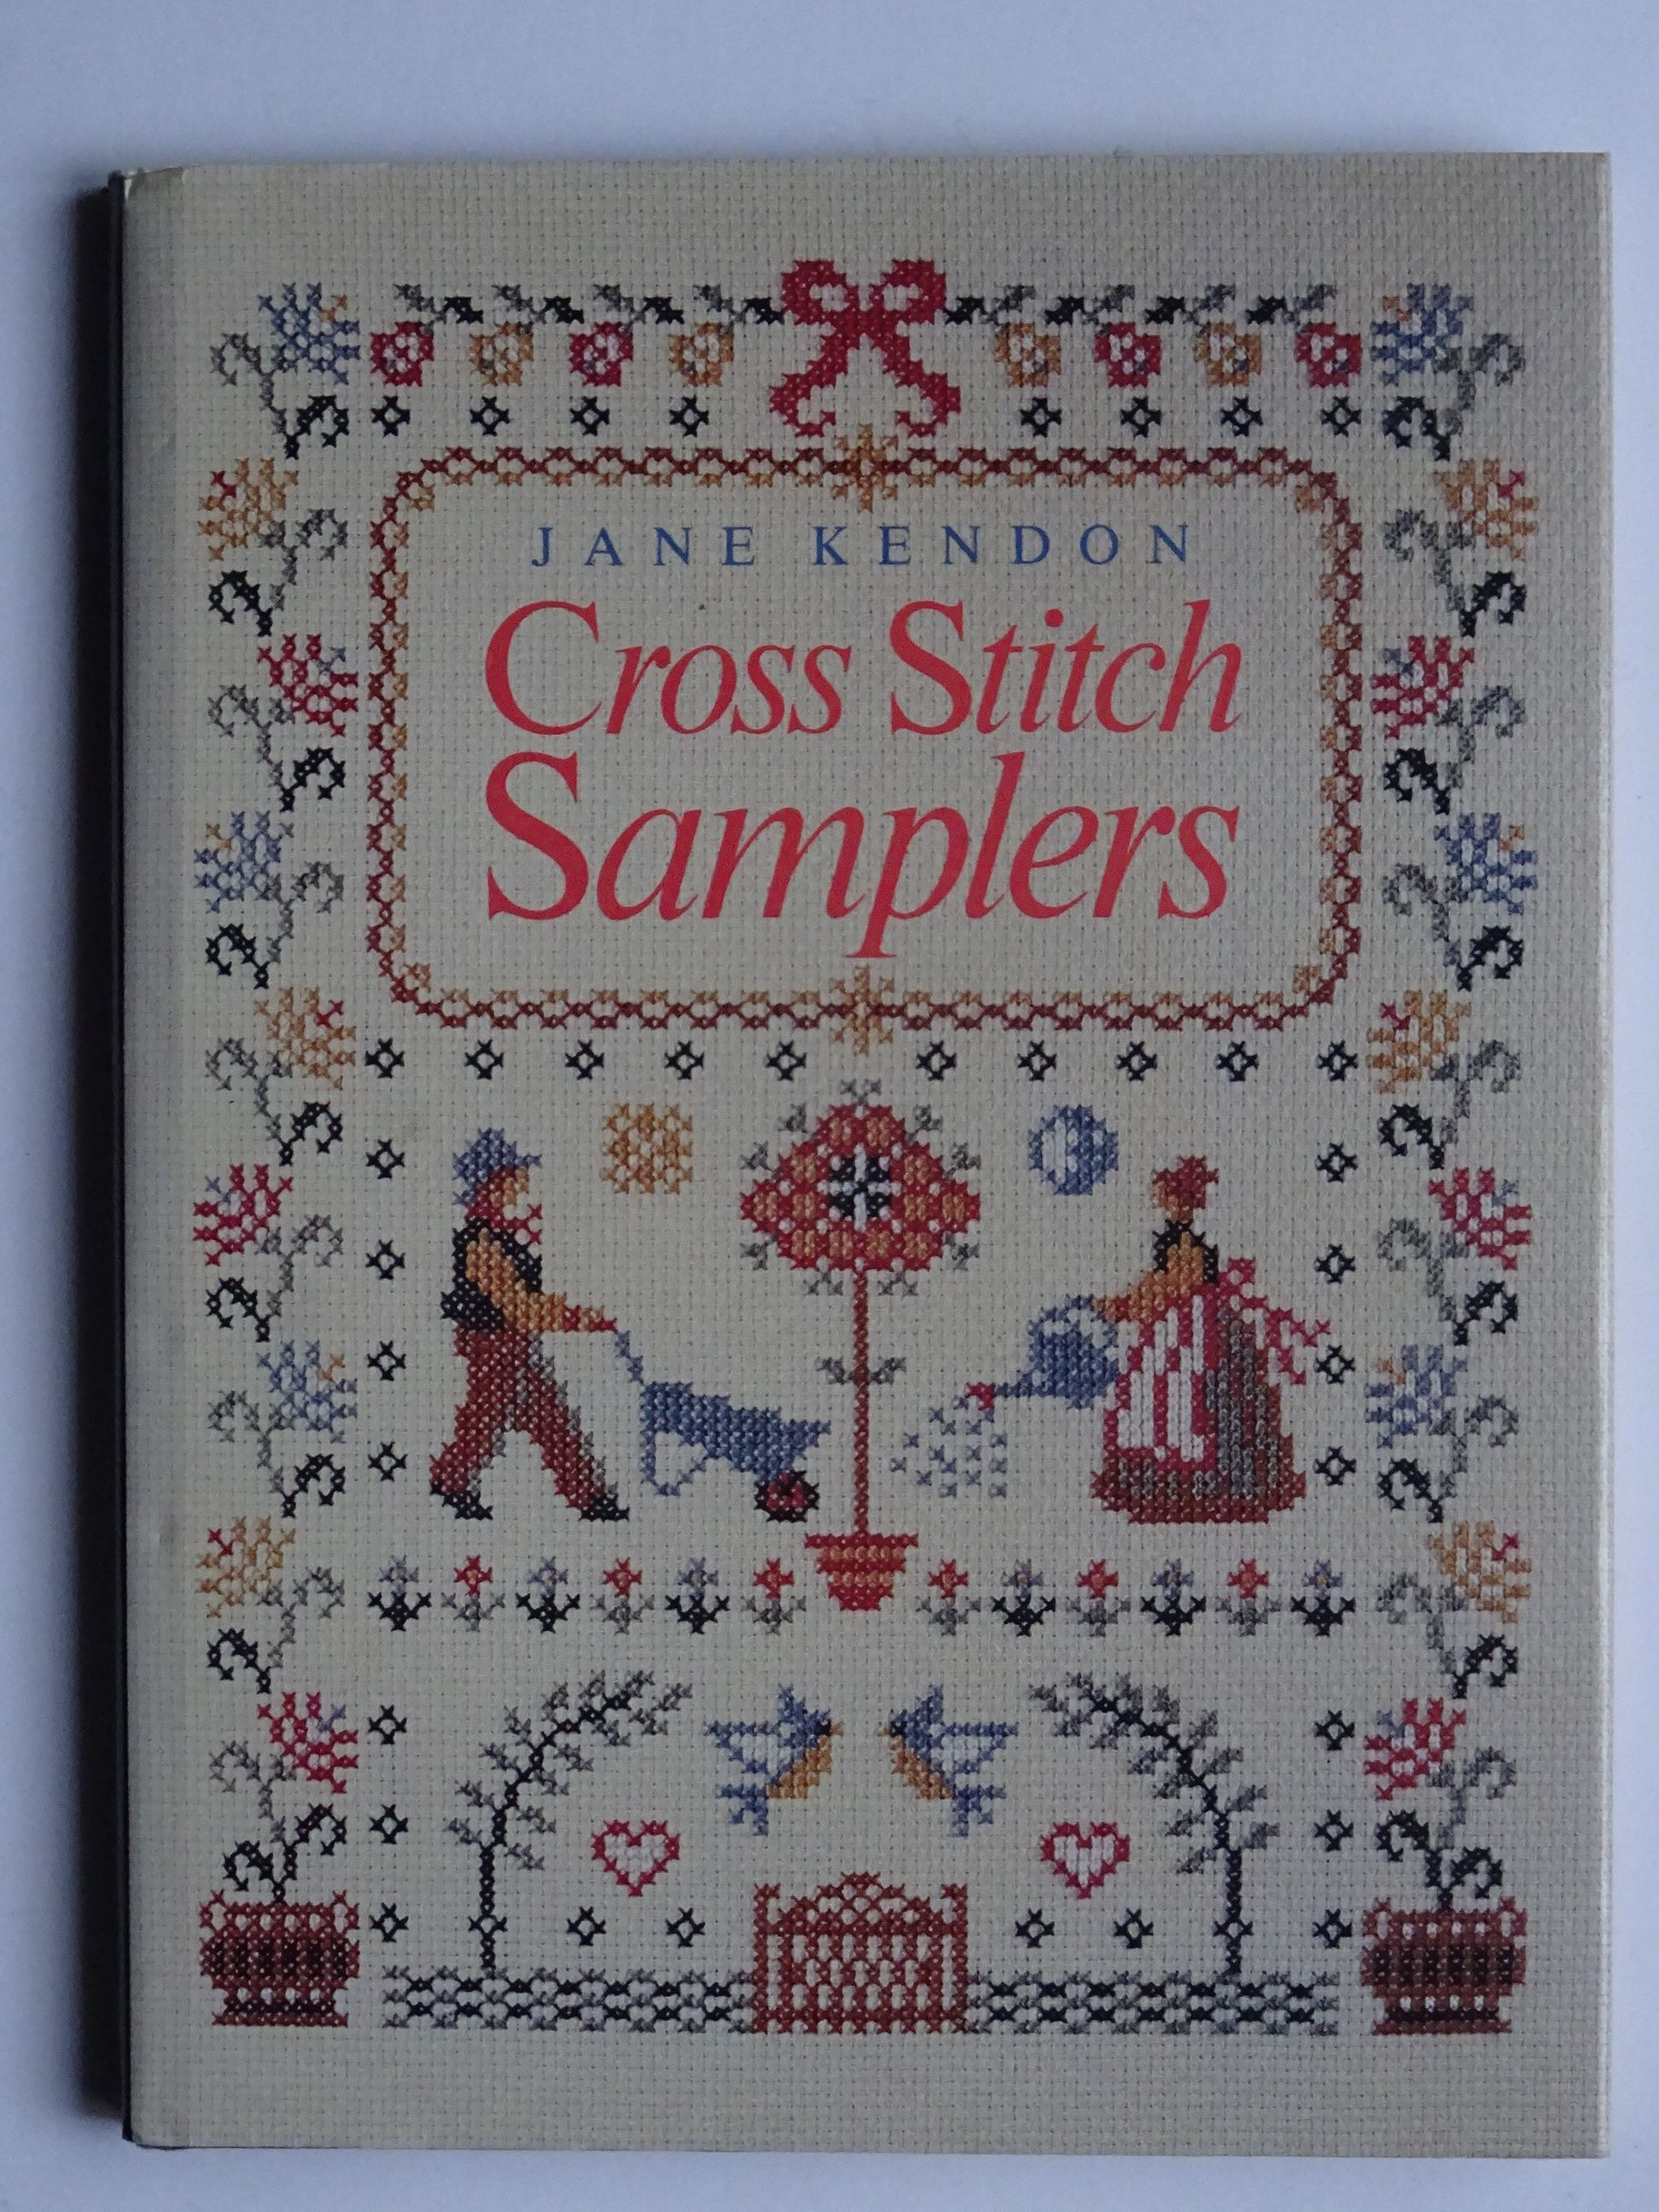 Kendon, Jane - Cross Stitch Sampler